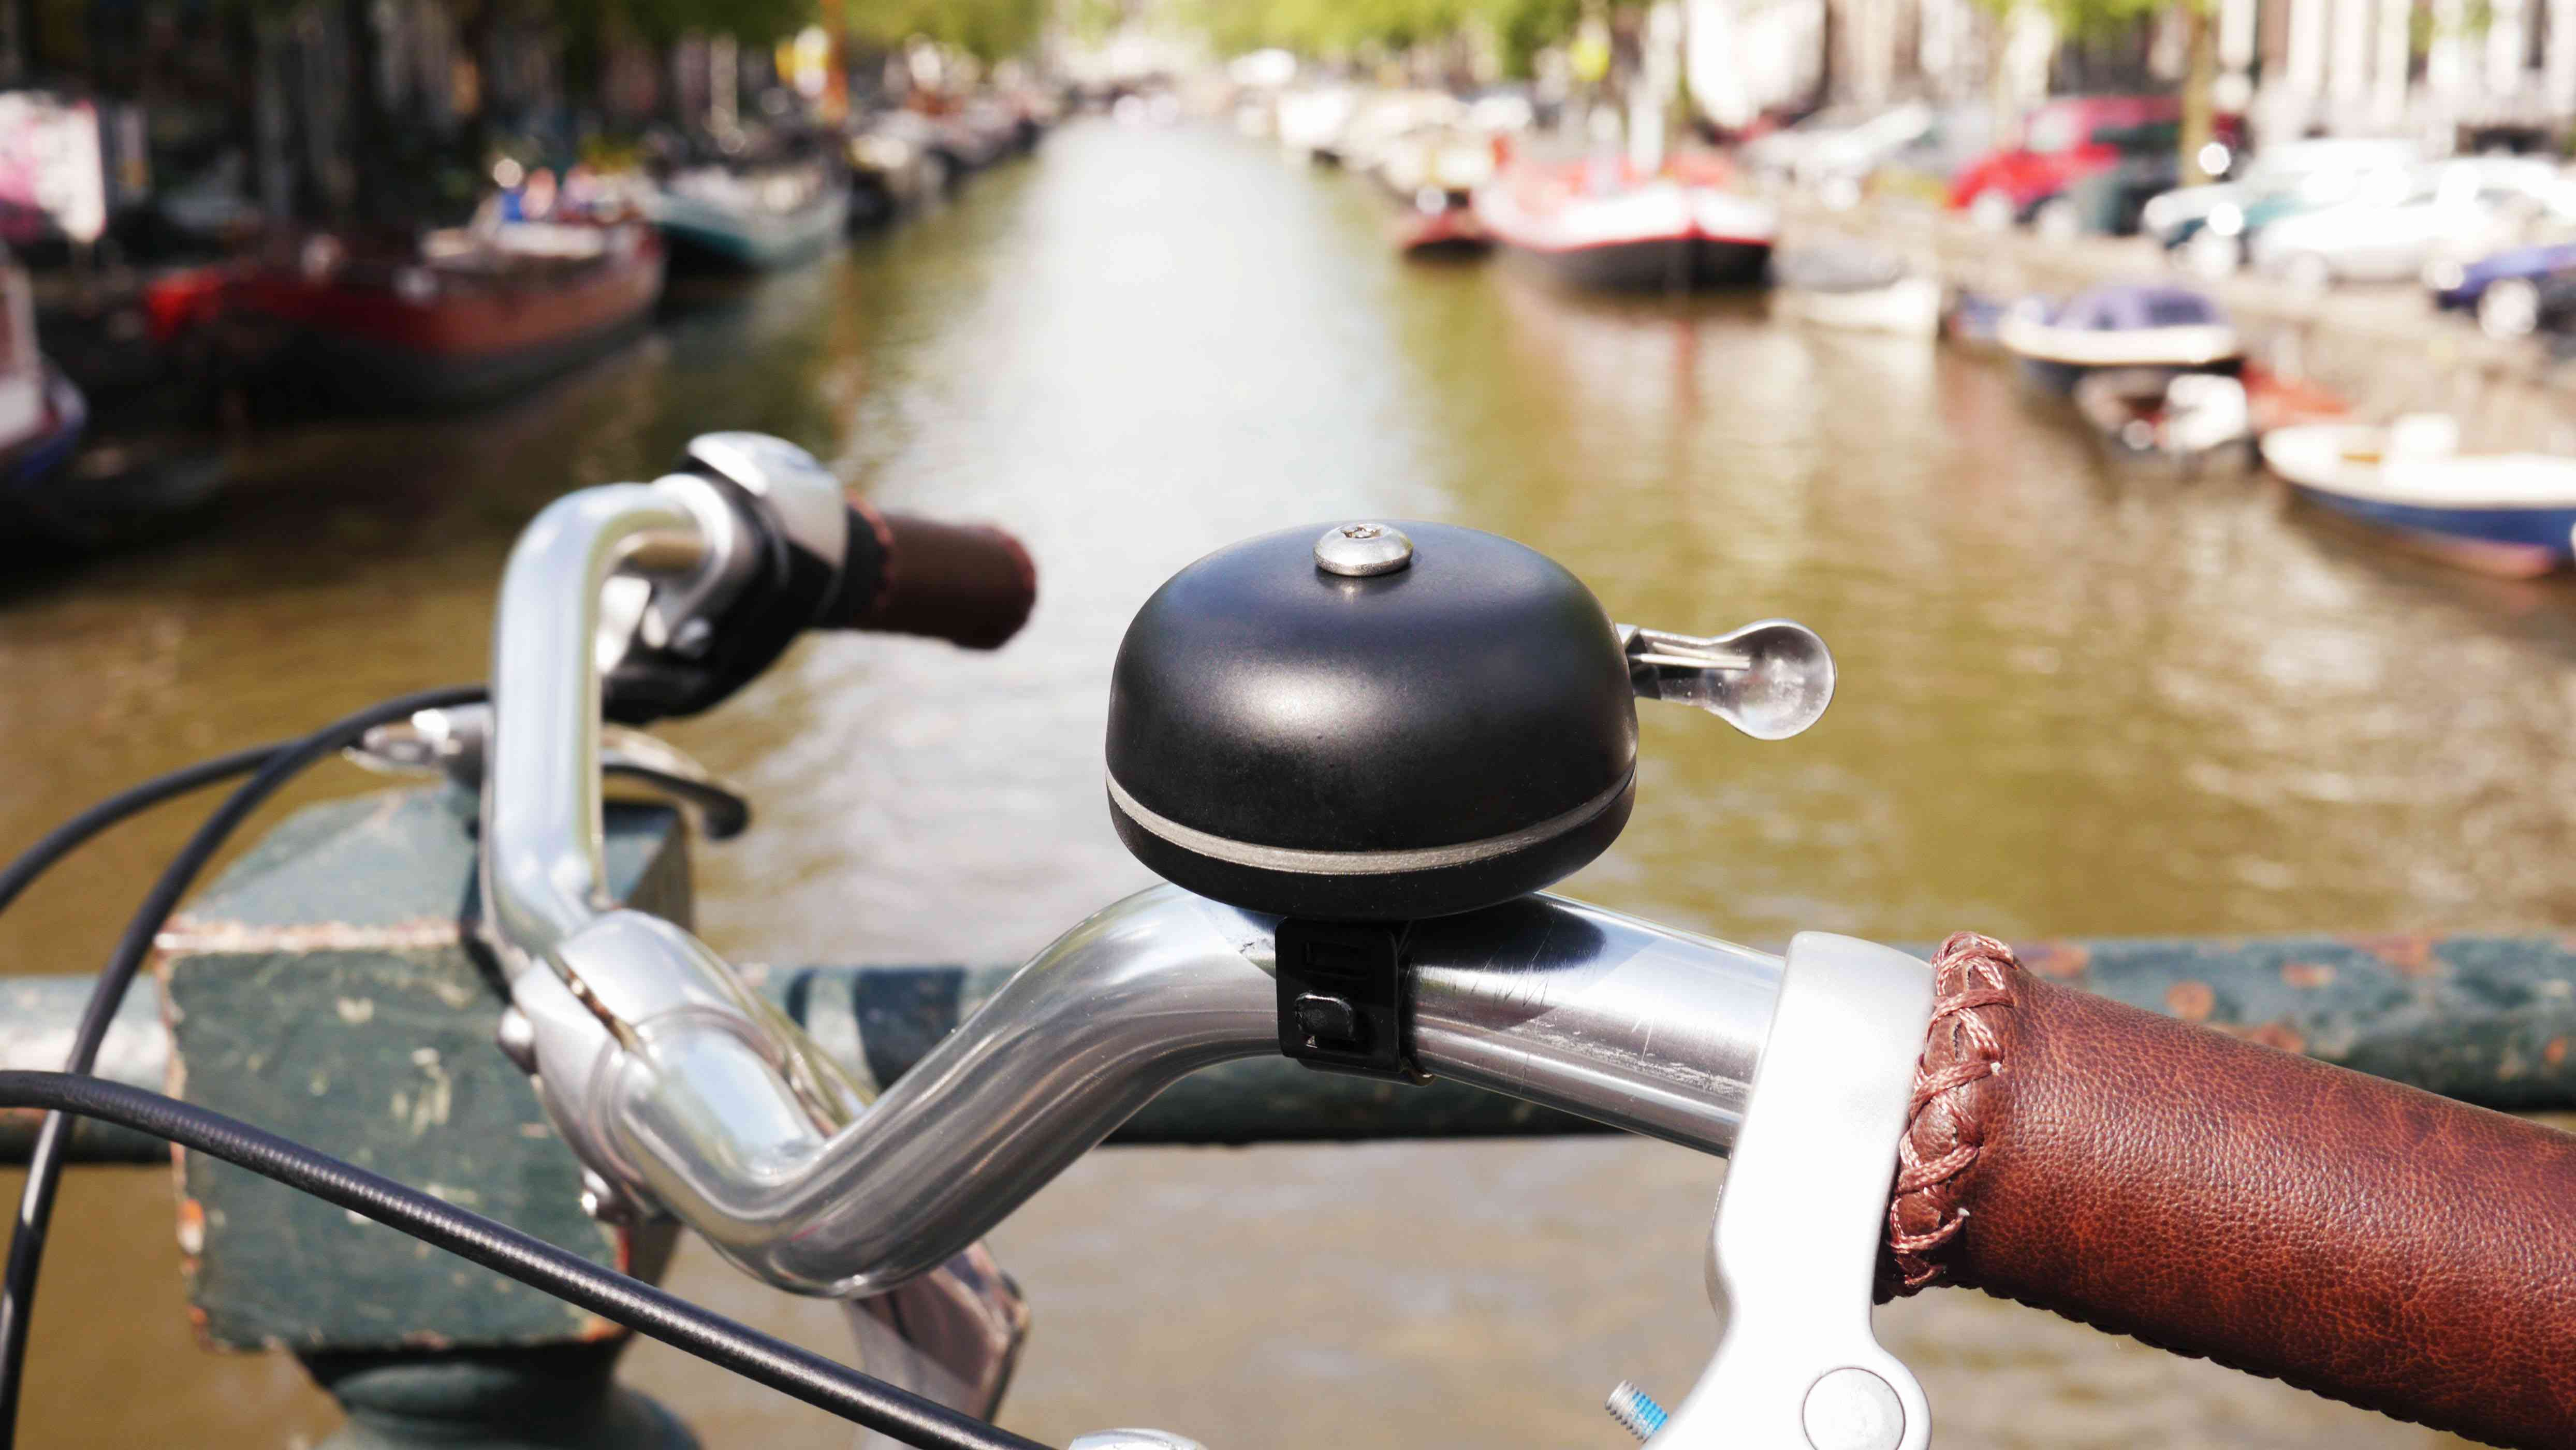 Pingbell, a Dutch-designed smart bike bell and corresponding app, helps cyclists easily locate their parked bikes.